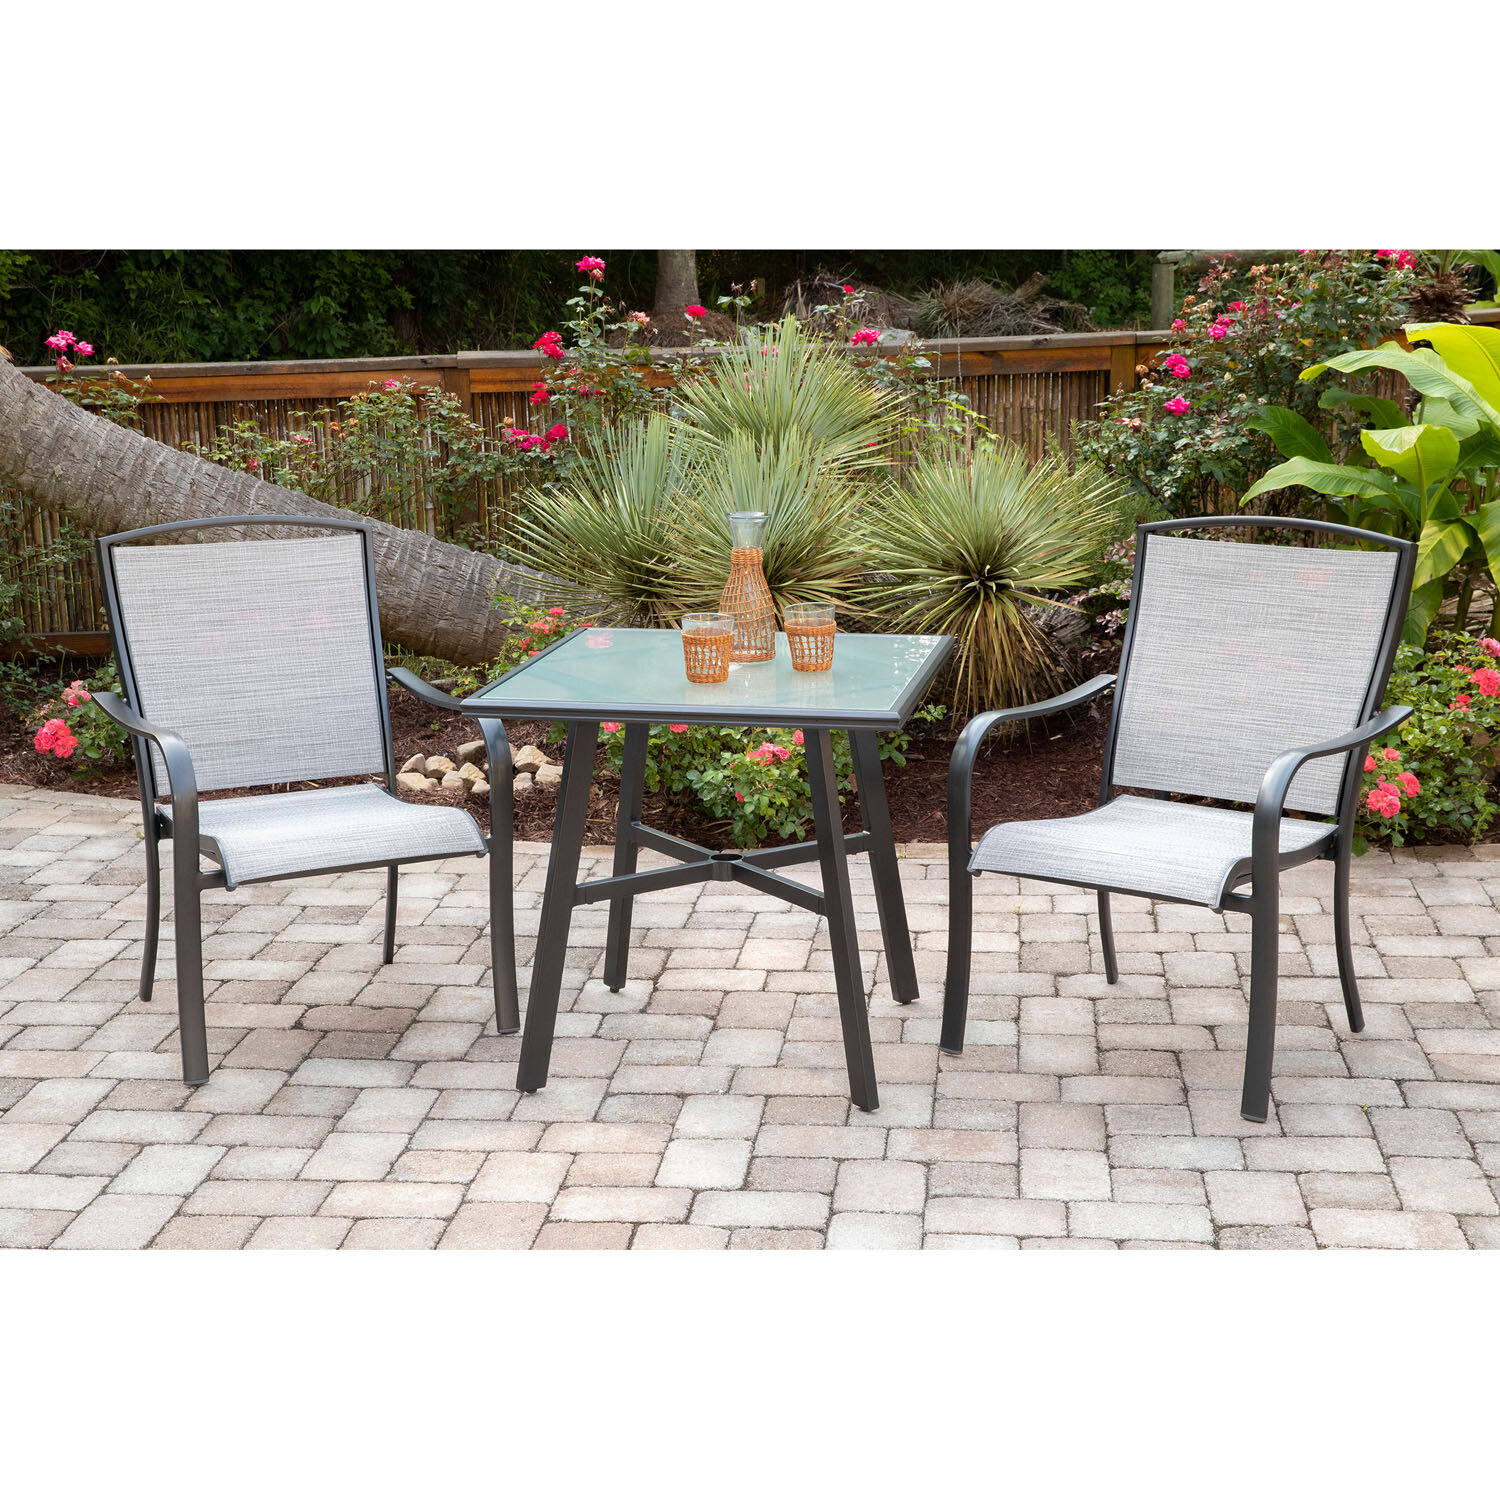 Charlton Home Wrenn 3 Piece Commercial Grade Bistro Set With 2 Sling Dining Chairs And A 30 Square Glass Top Table